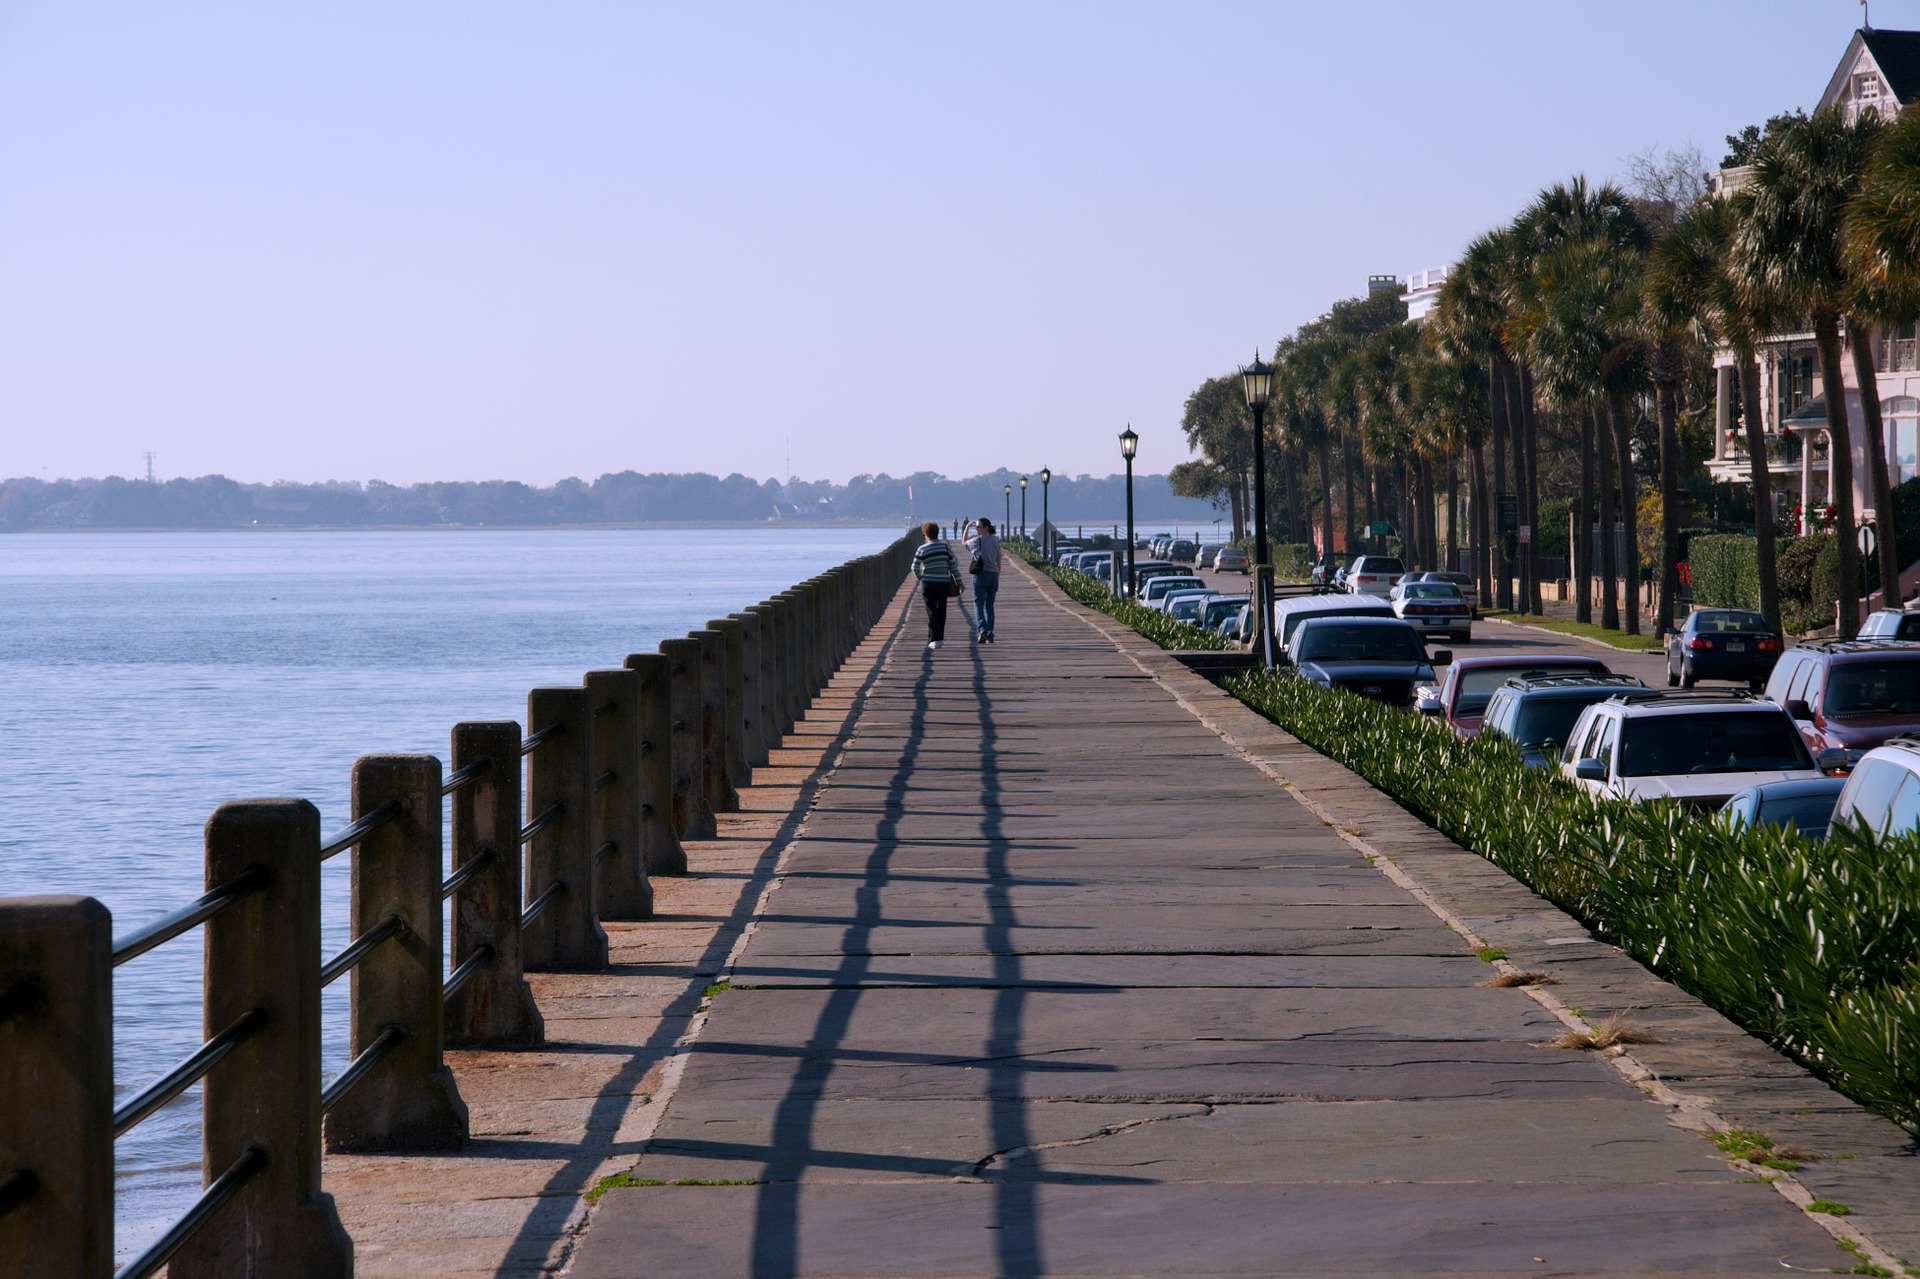 all charleston travel guides will recommend a walk on the battery